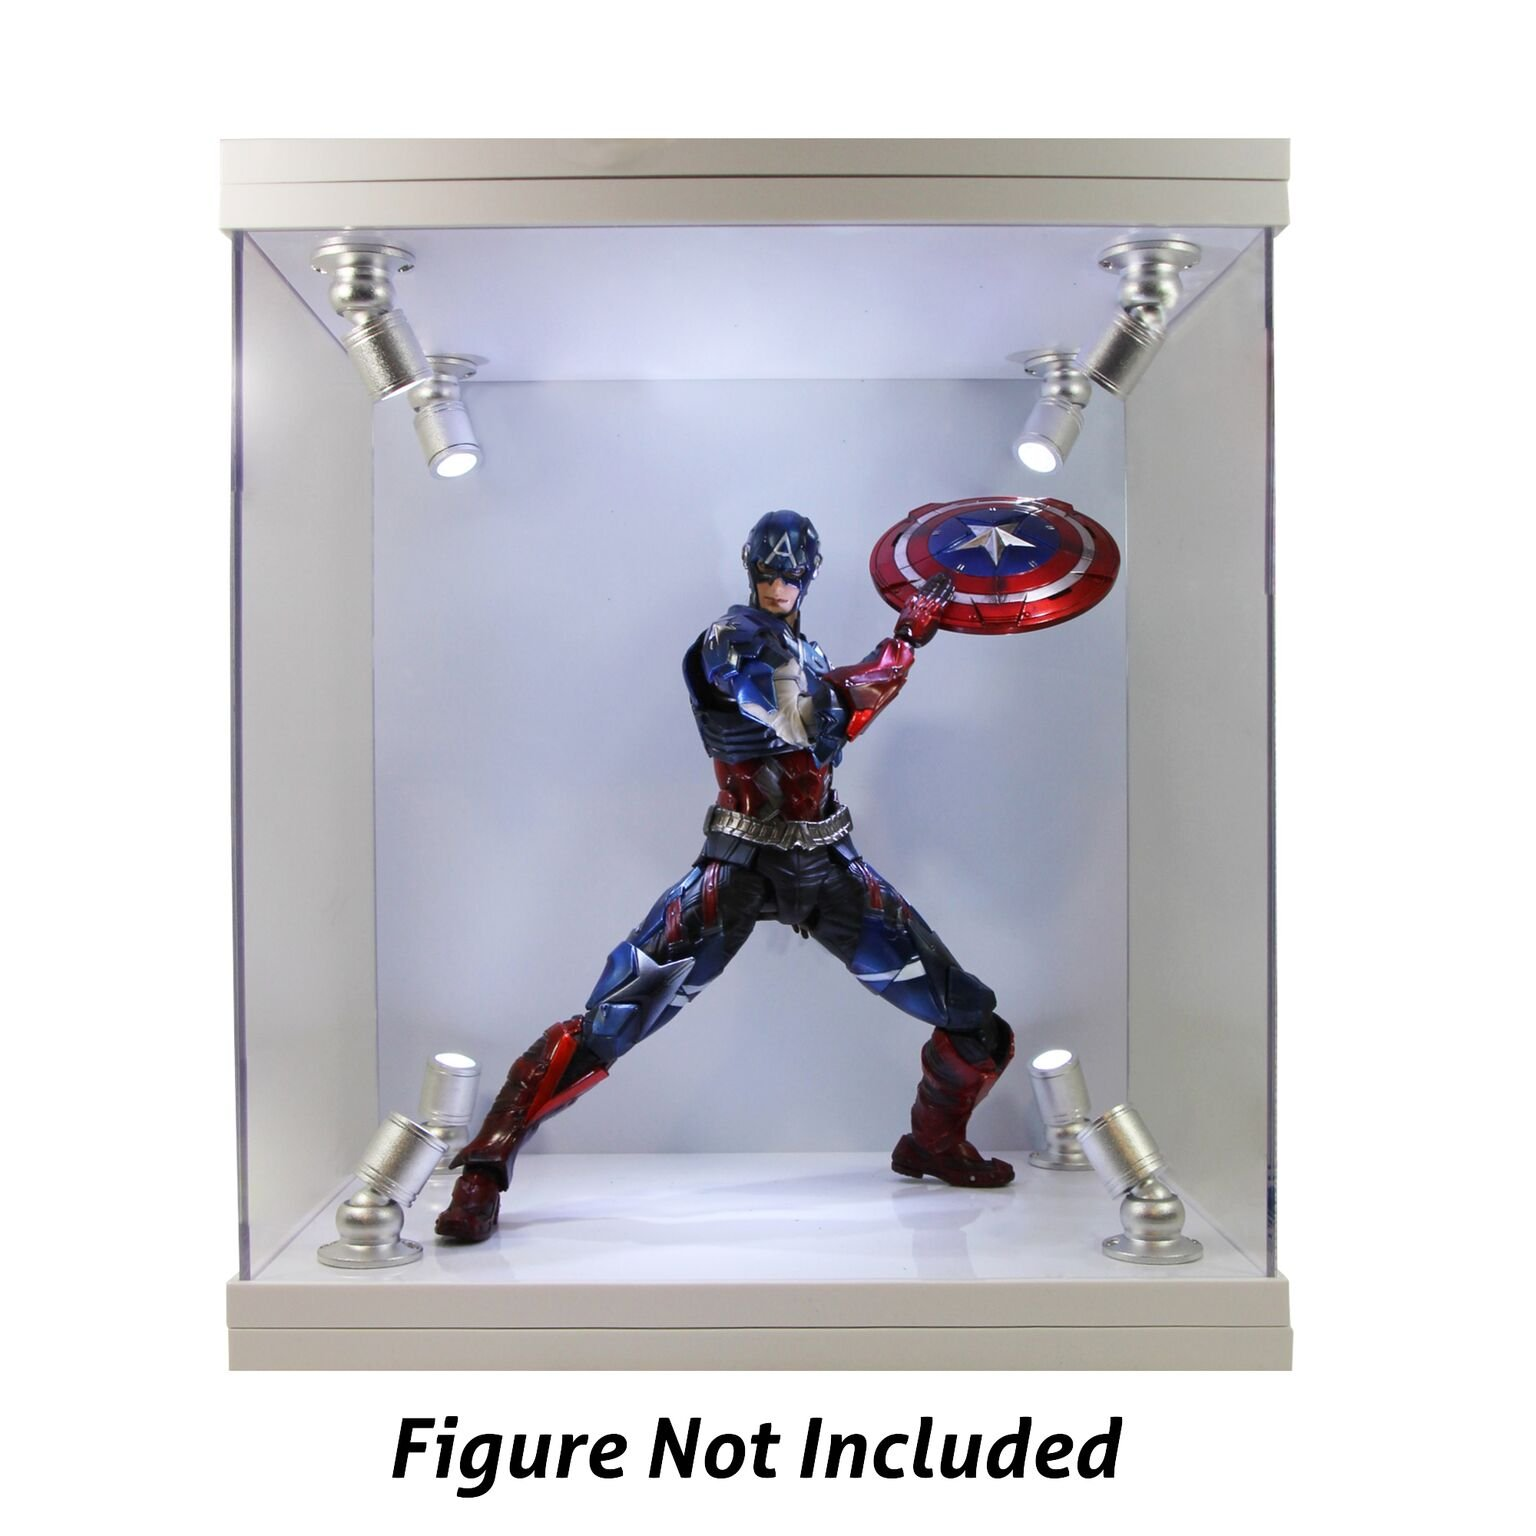 ELITE E-02 GLOSS WHITE 8 LED LIGHTED FIGURE STATUE DOLL DISPLAY CASE FOR MOST FIGURES UP TO 11'' INCHES TALL by Elite Figure Cases (Image #2)